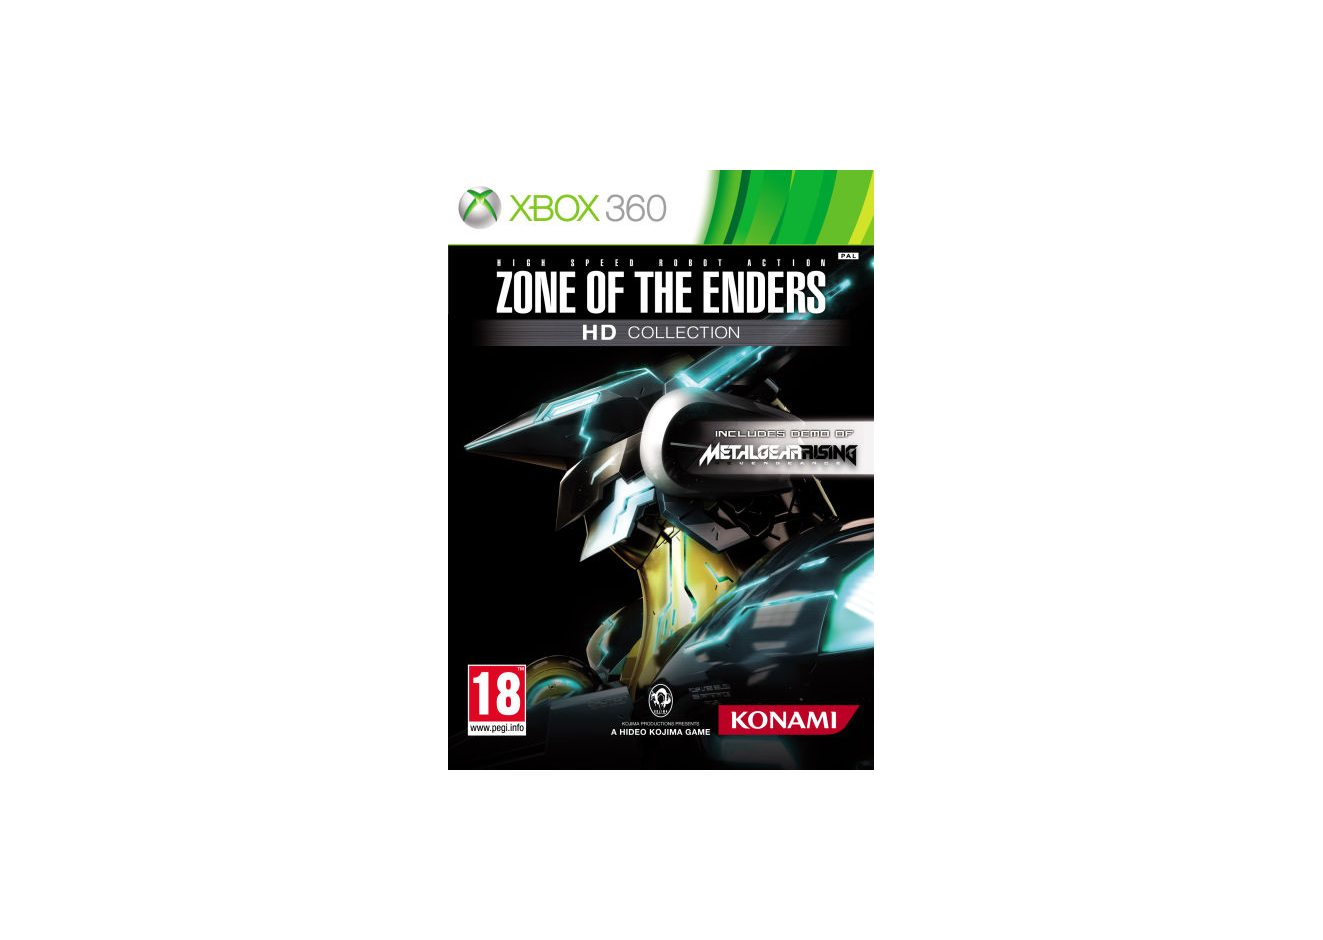 Xbox 360 Zone of the Enders HD Collection Xbox 360